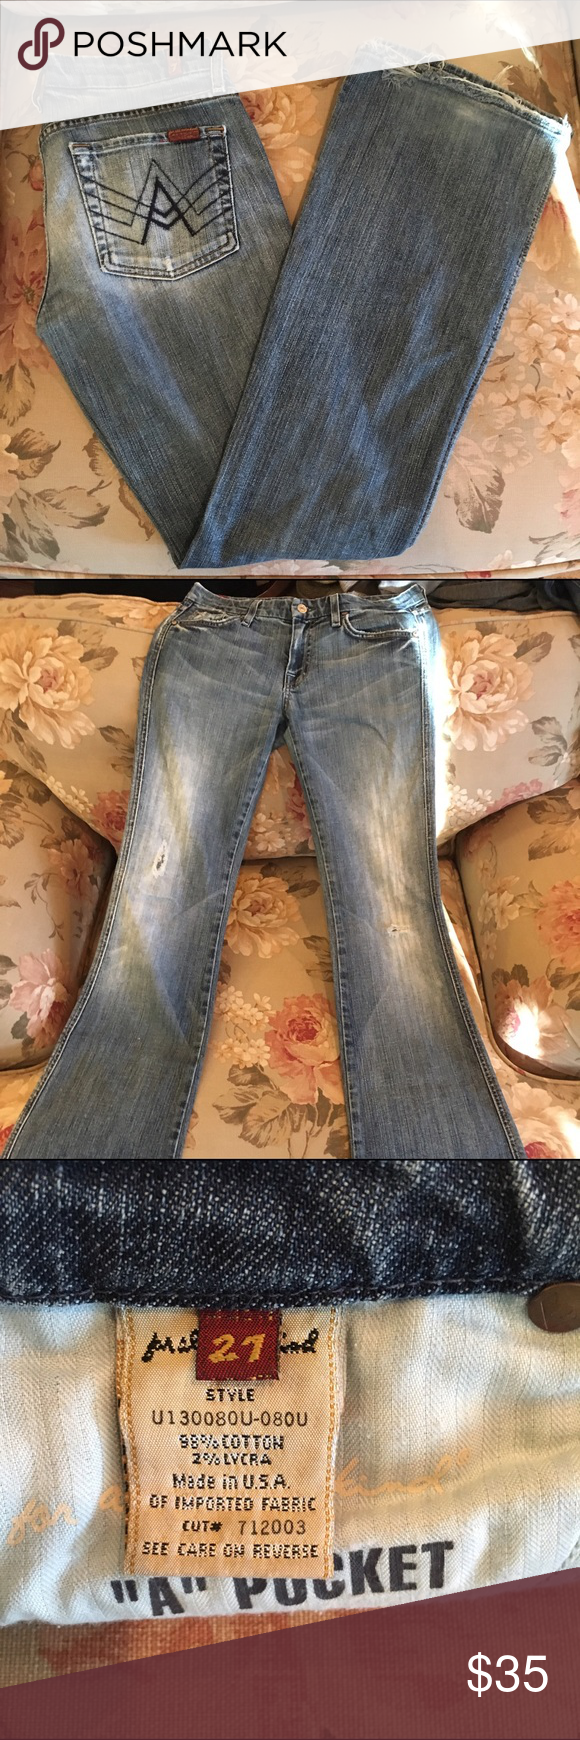 7 for All Mankind bootcut jeans Sz 27 Pre-Owned 7 for All Mankind bootcut jeans size 27. Light wash. Bottom of jeans are slightly worn. 7 For All Mankind Pants Boot Cut & Flare